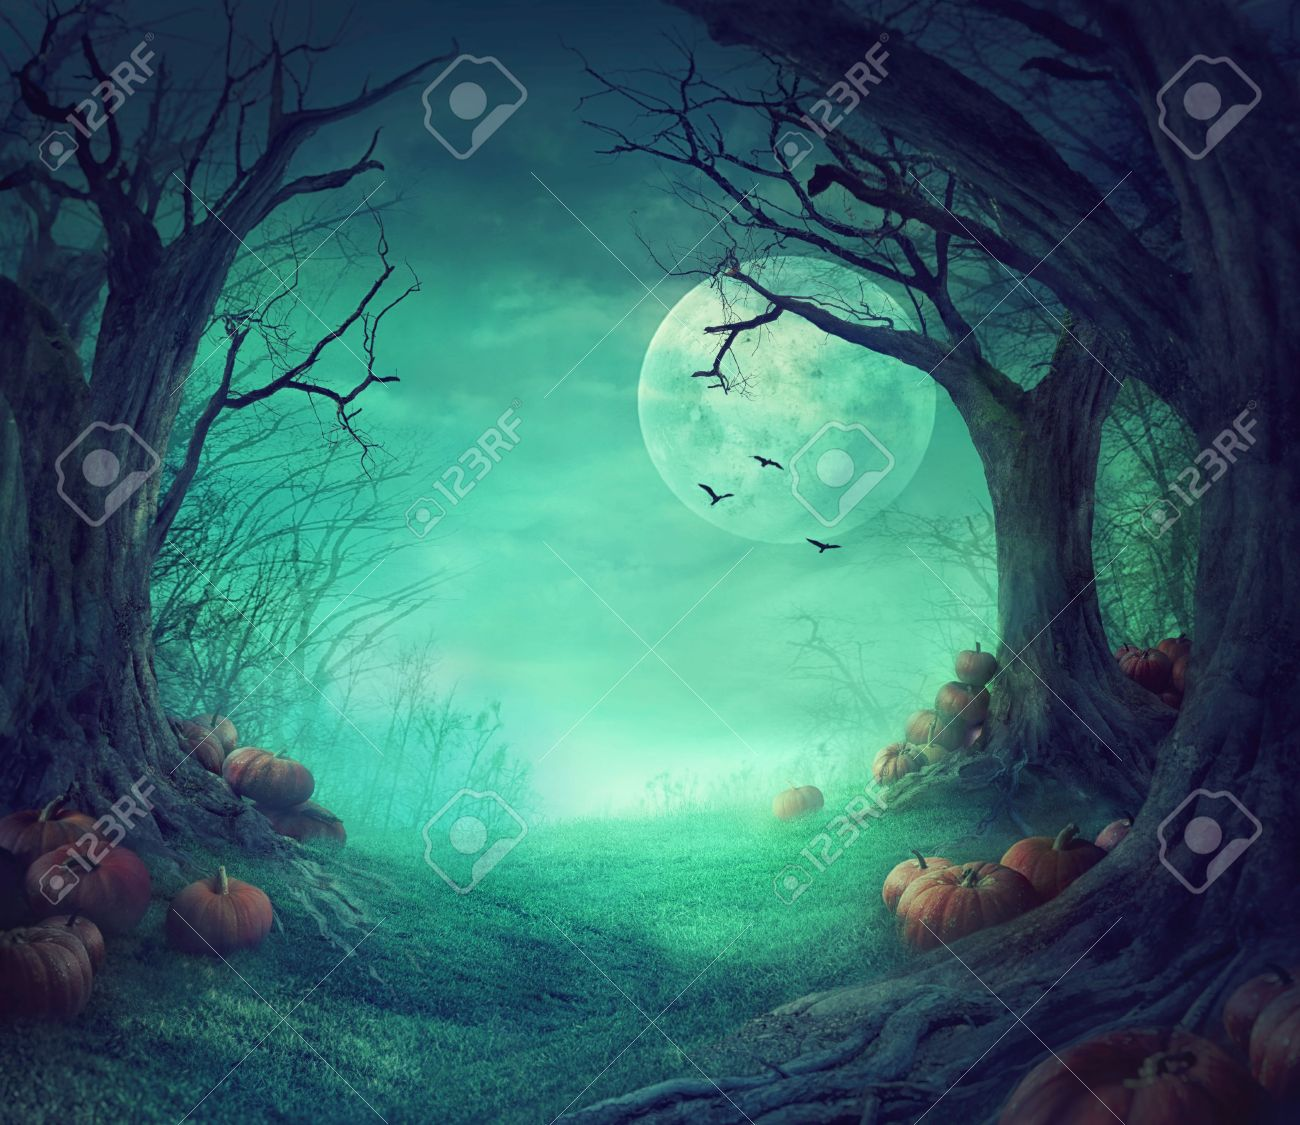 Halloween background. Spooky forest with dead trees and pumpkins. Halloween design with pumpkins - 63075673